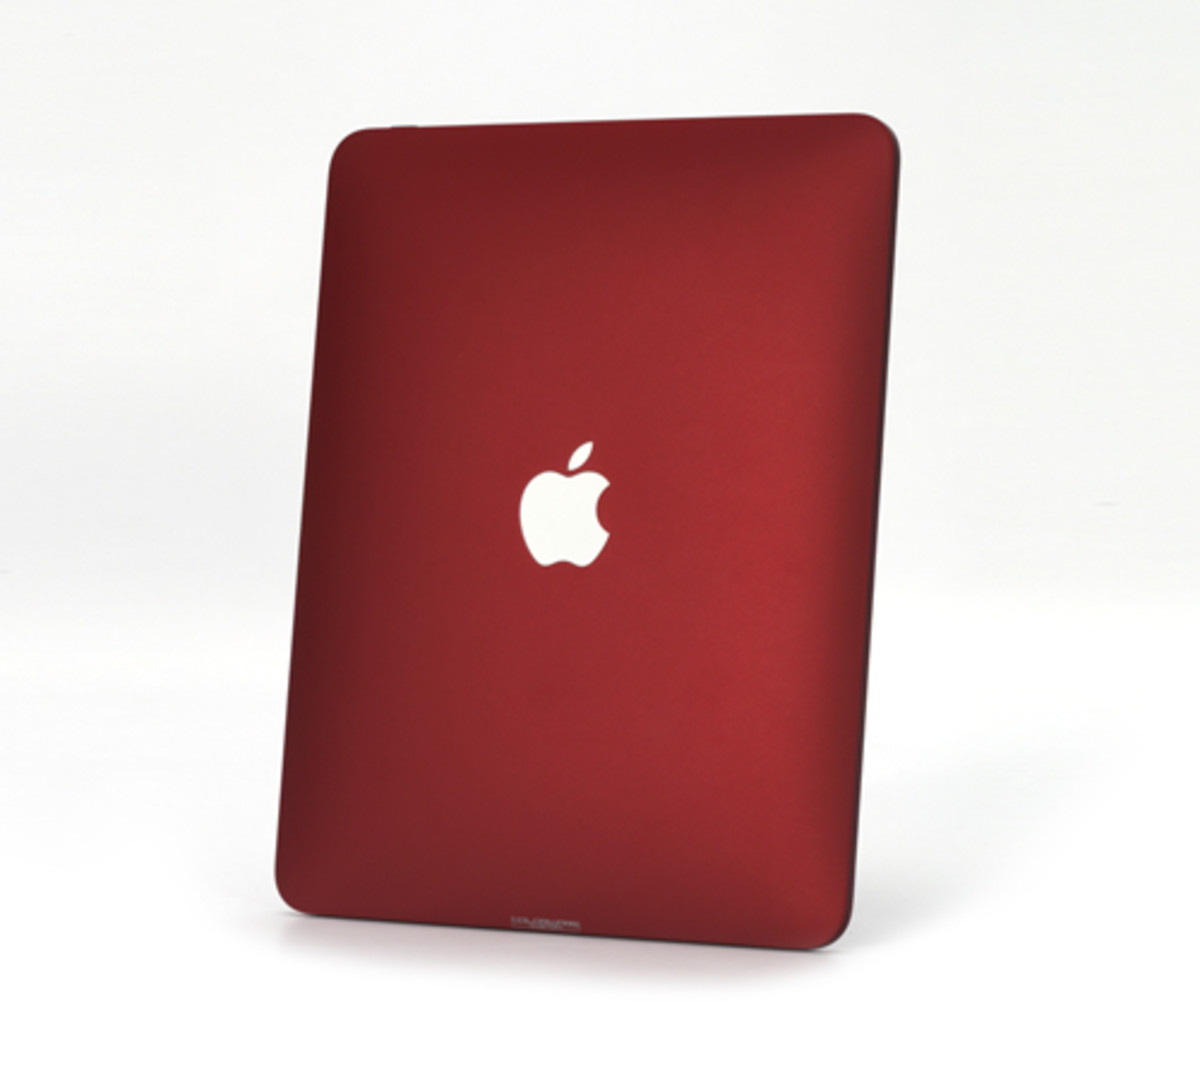 colorware-ipad-2-03